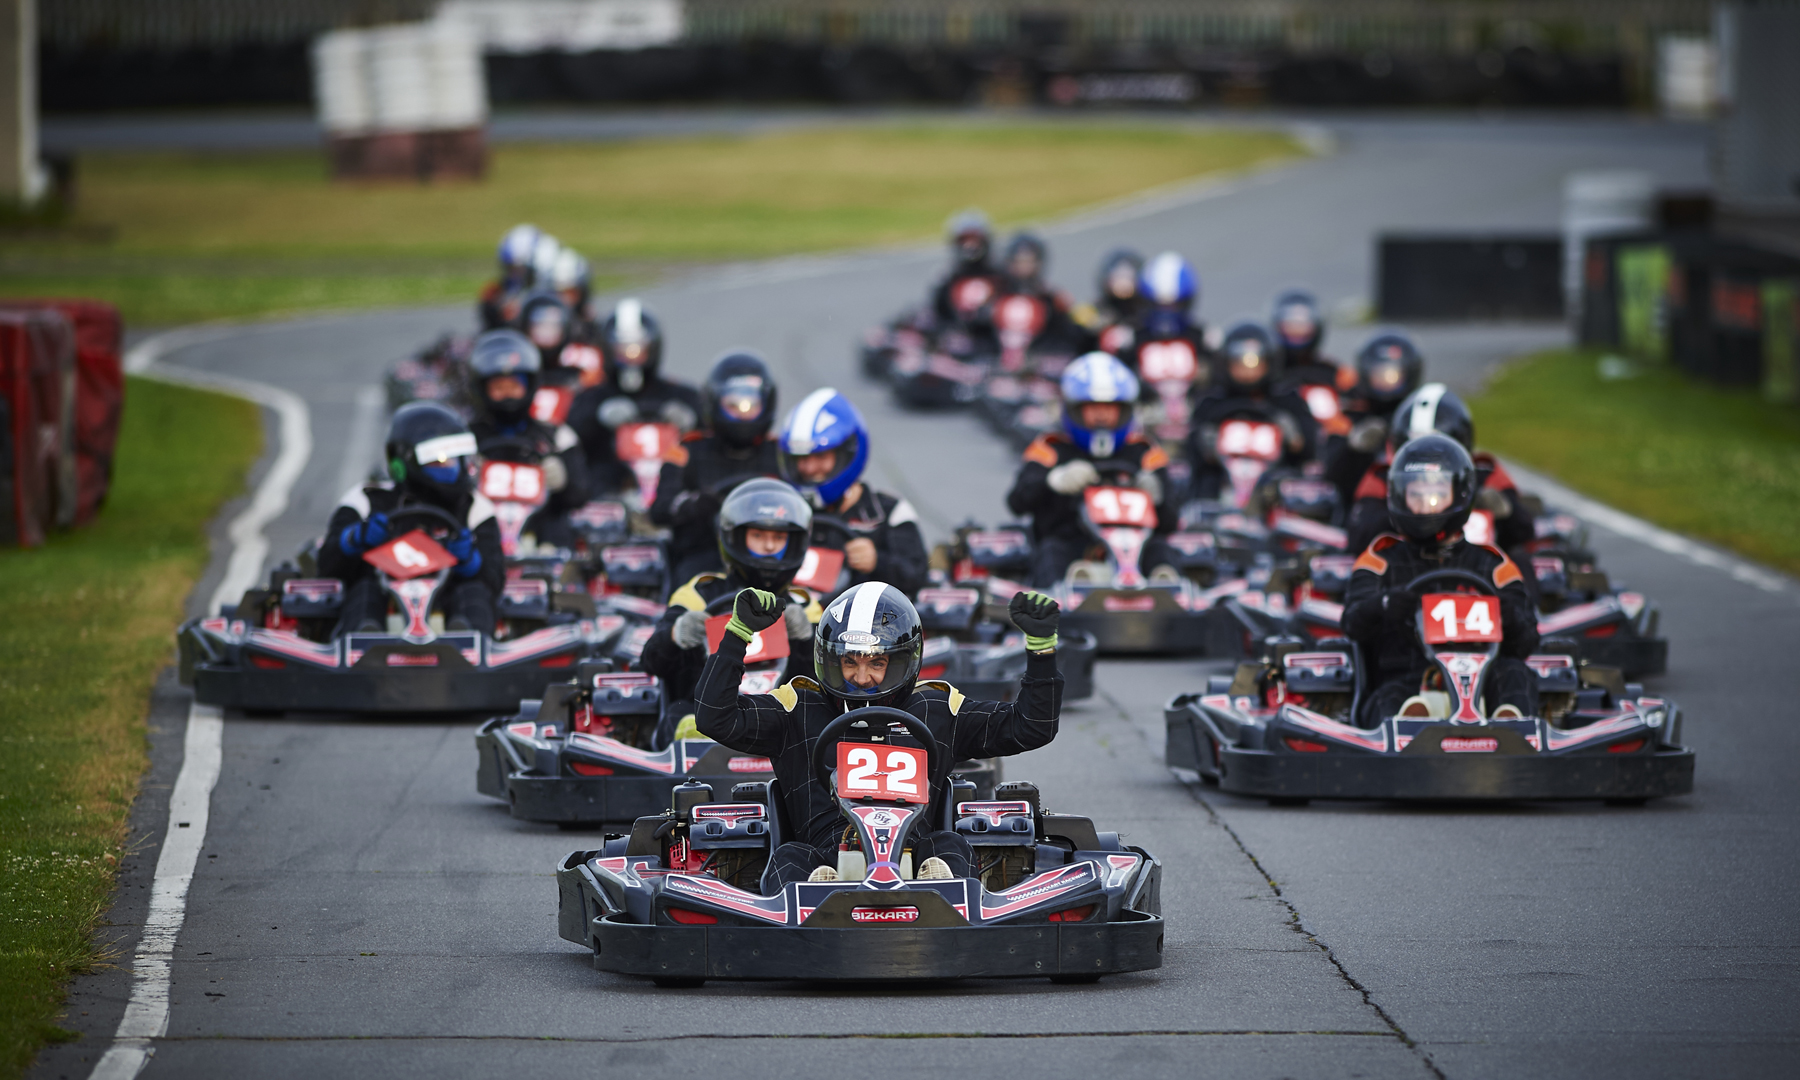 Team Building kart racing